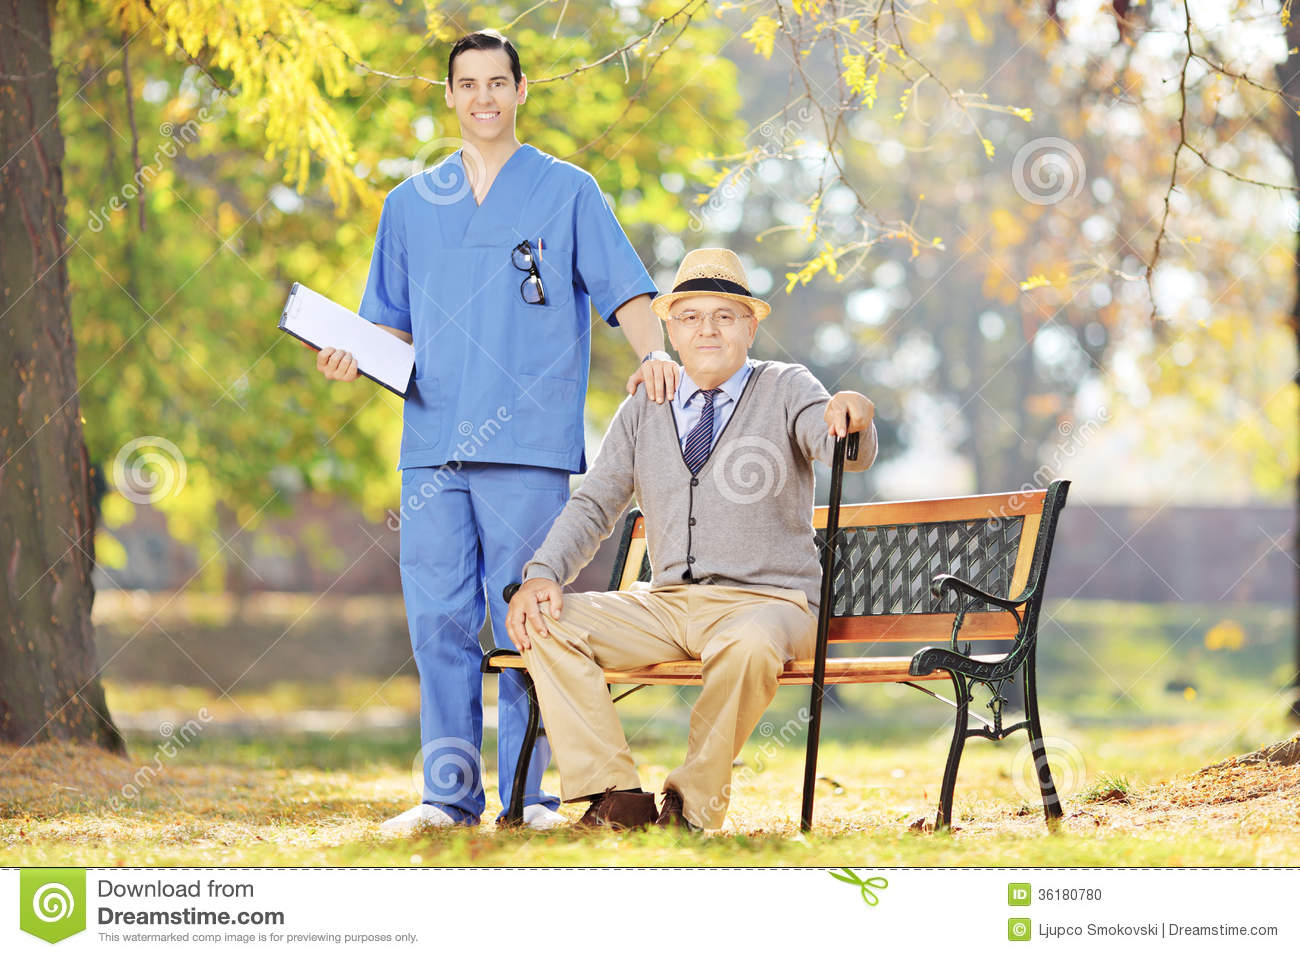 Healthcare Professional Standing Next To A Senior Man